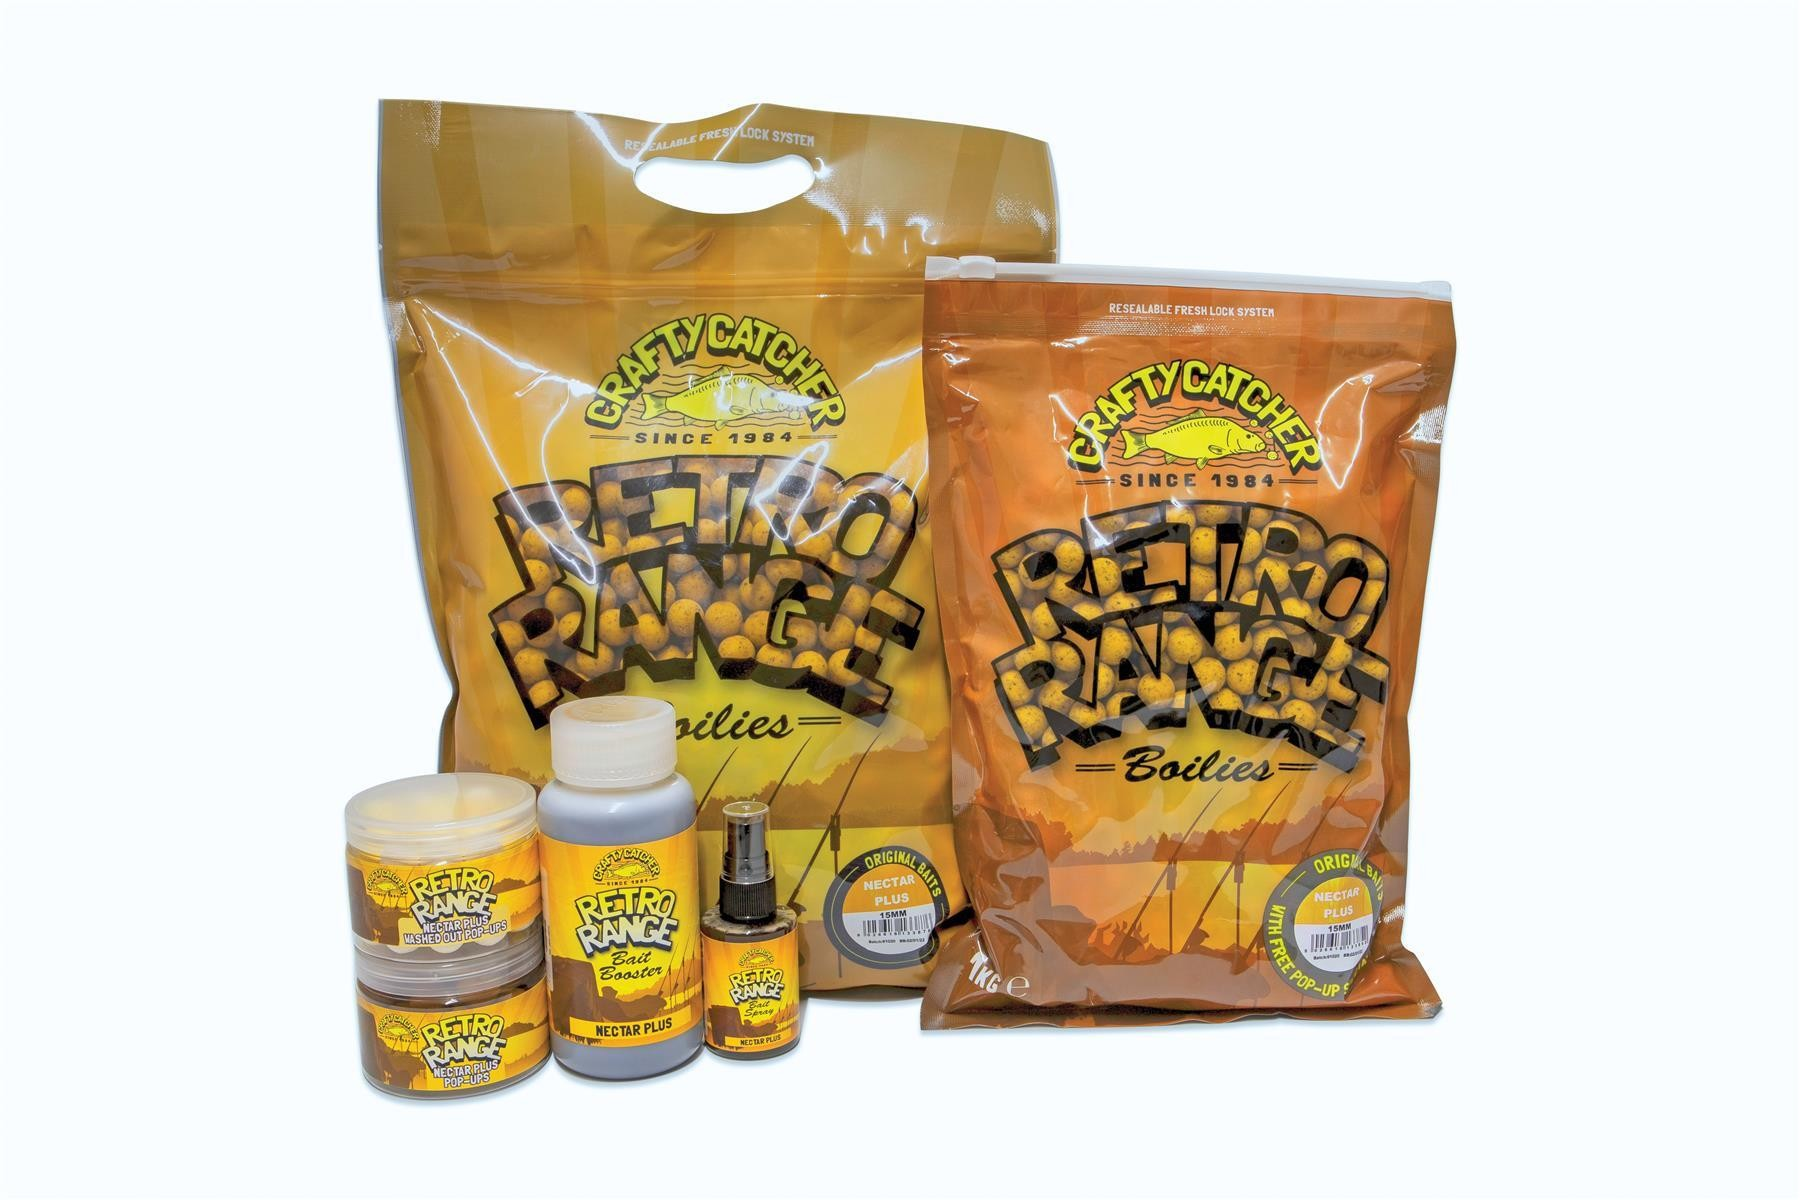 Crafty Catcher Retro Range Nectar Plus Bundle Boilies & Liquids 1kg